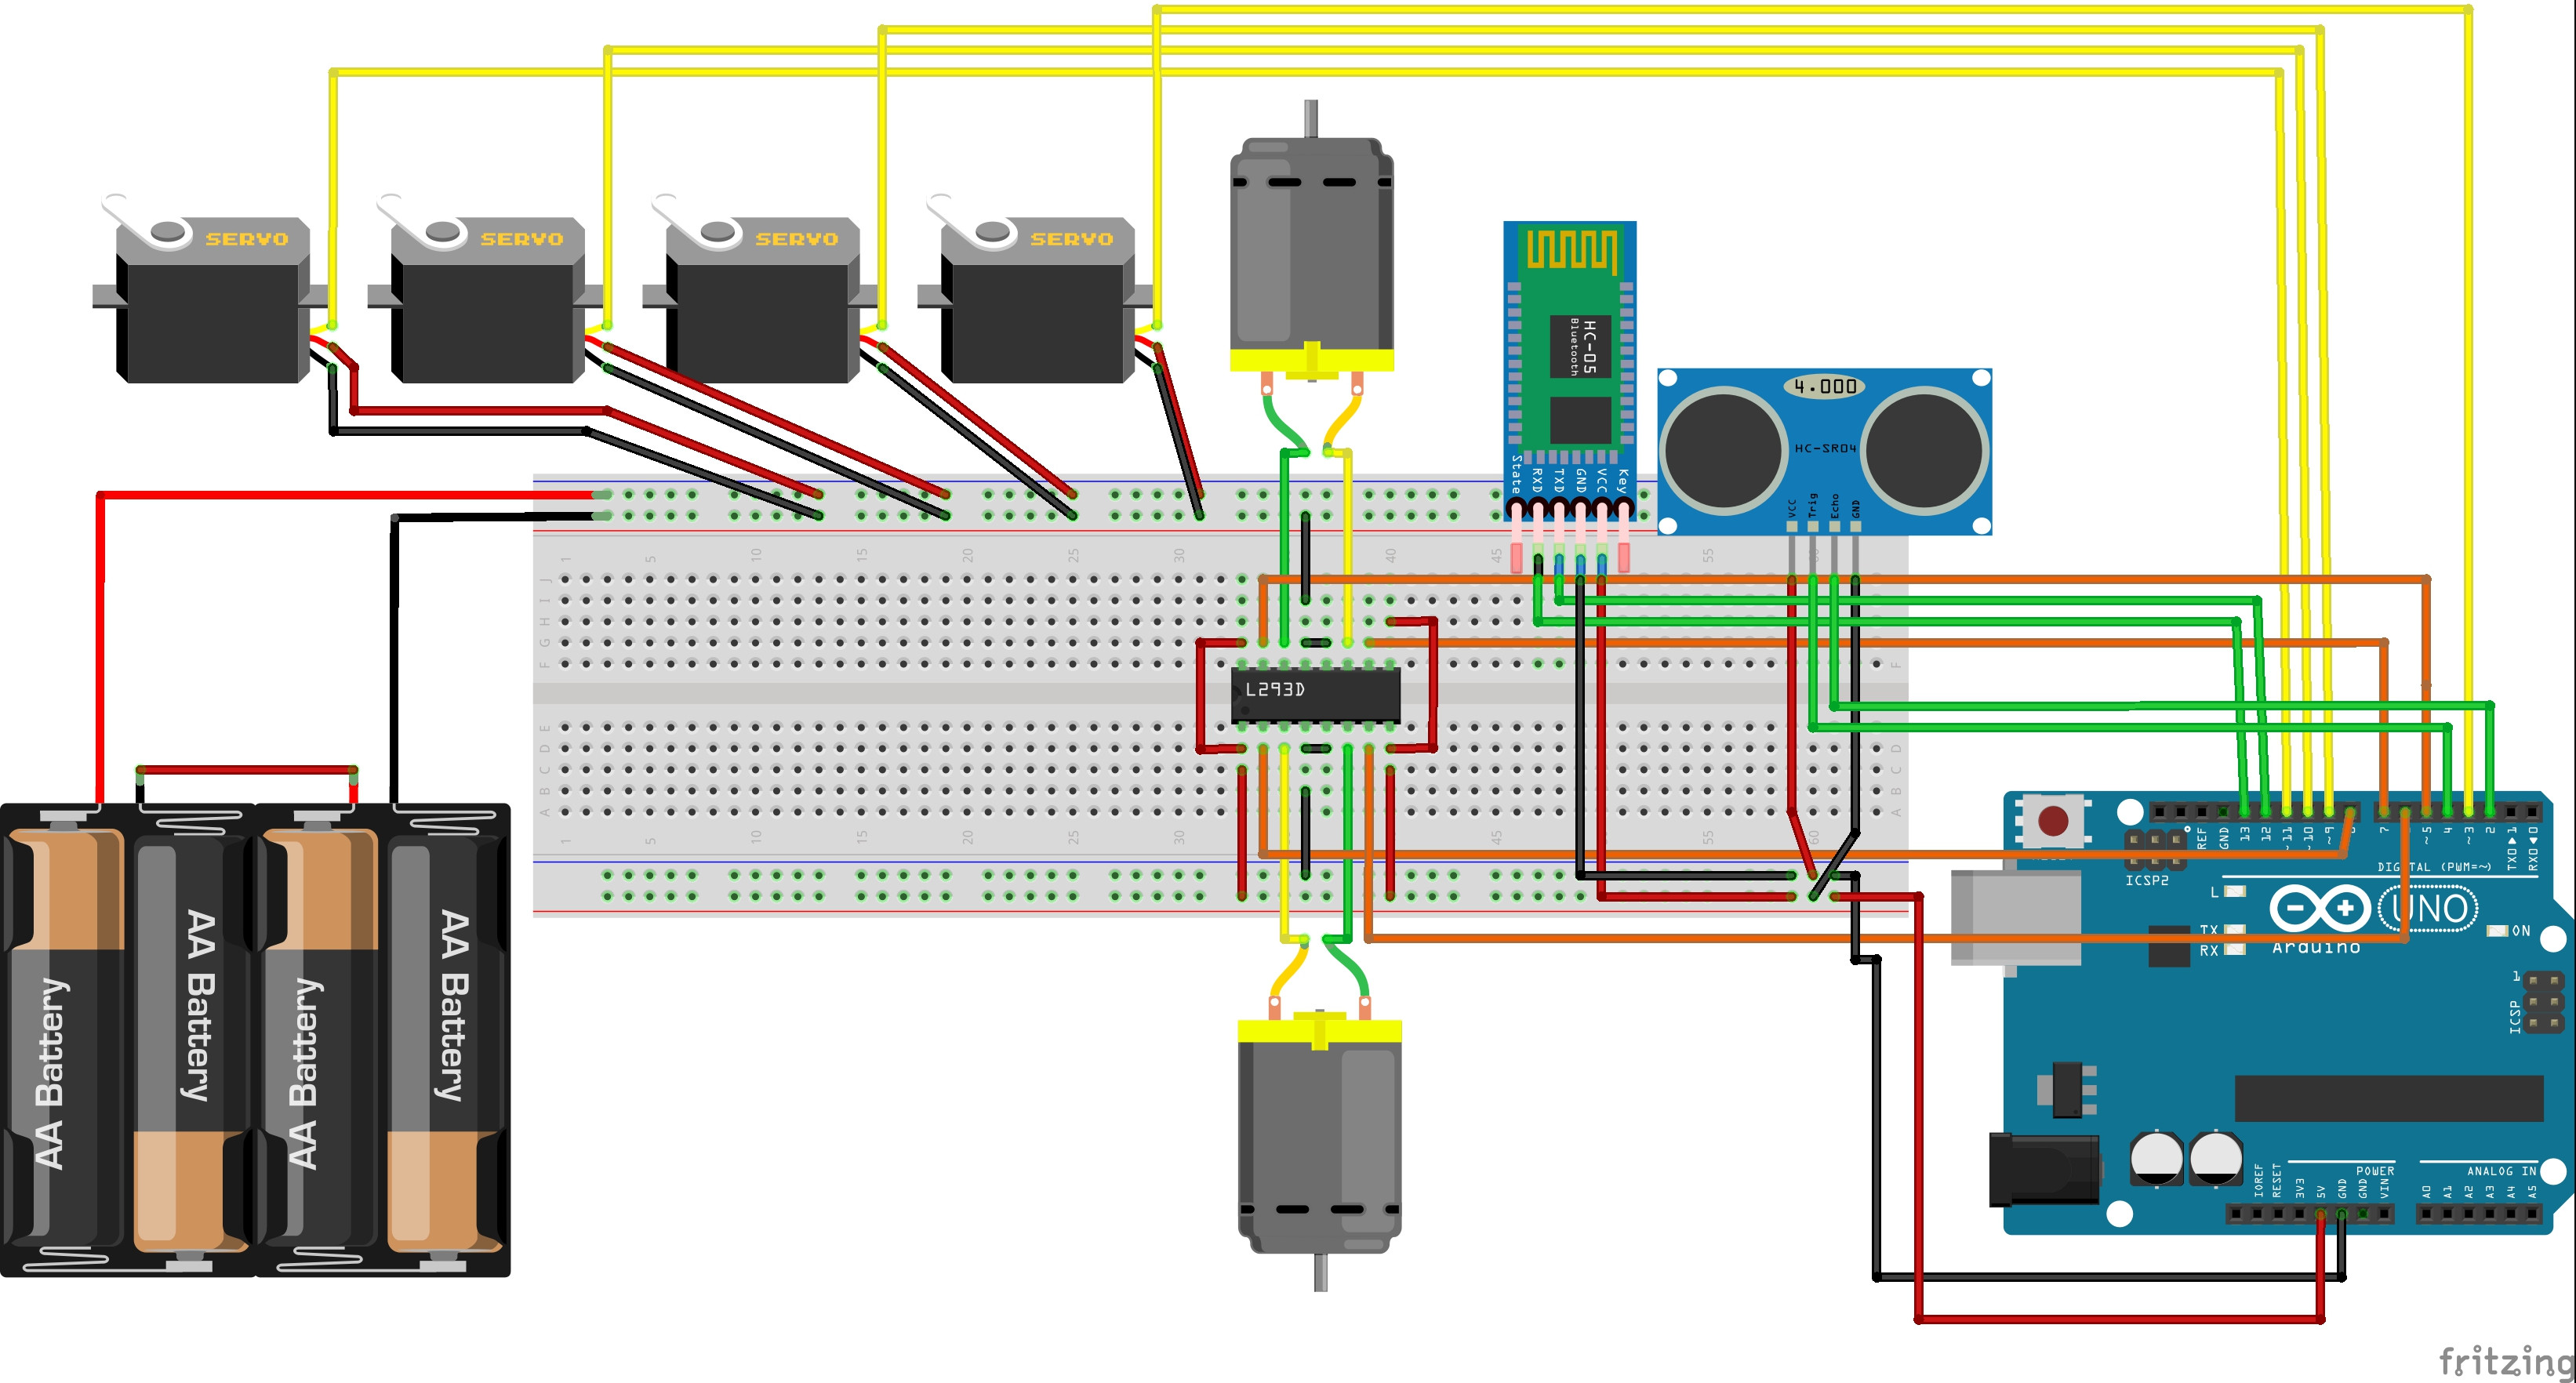 l293d motor driver circuit diagram tele wiring diagrams connecting 4 servos, 2 motors, hc-05, sr-04 and to arduino - stack exchange